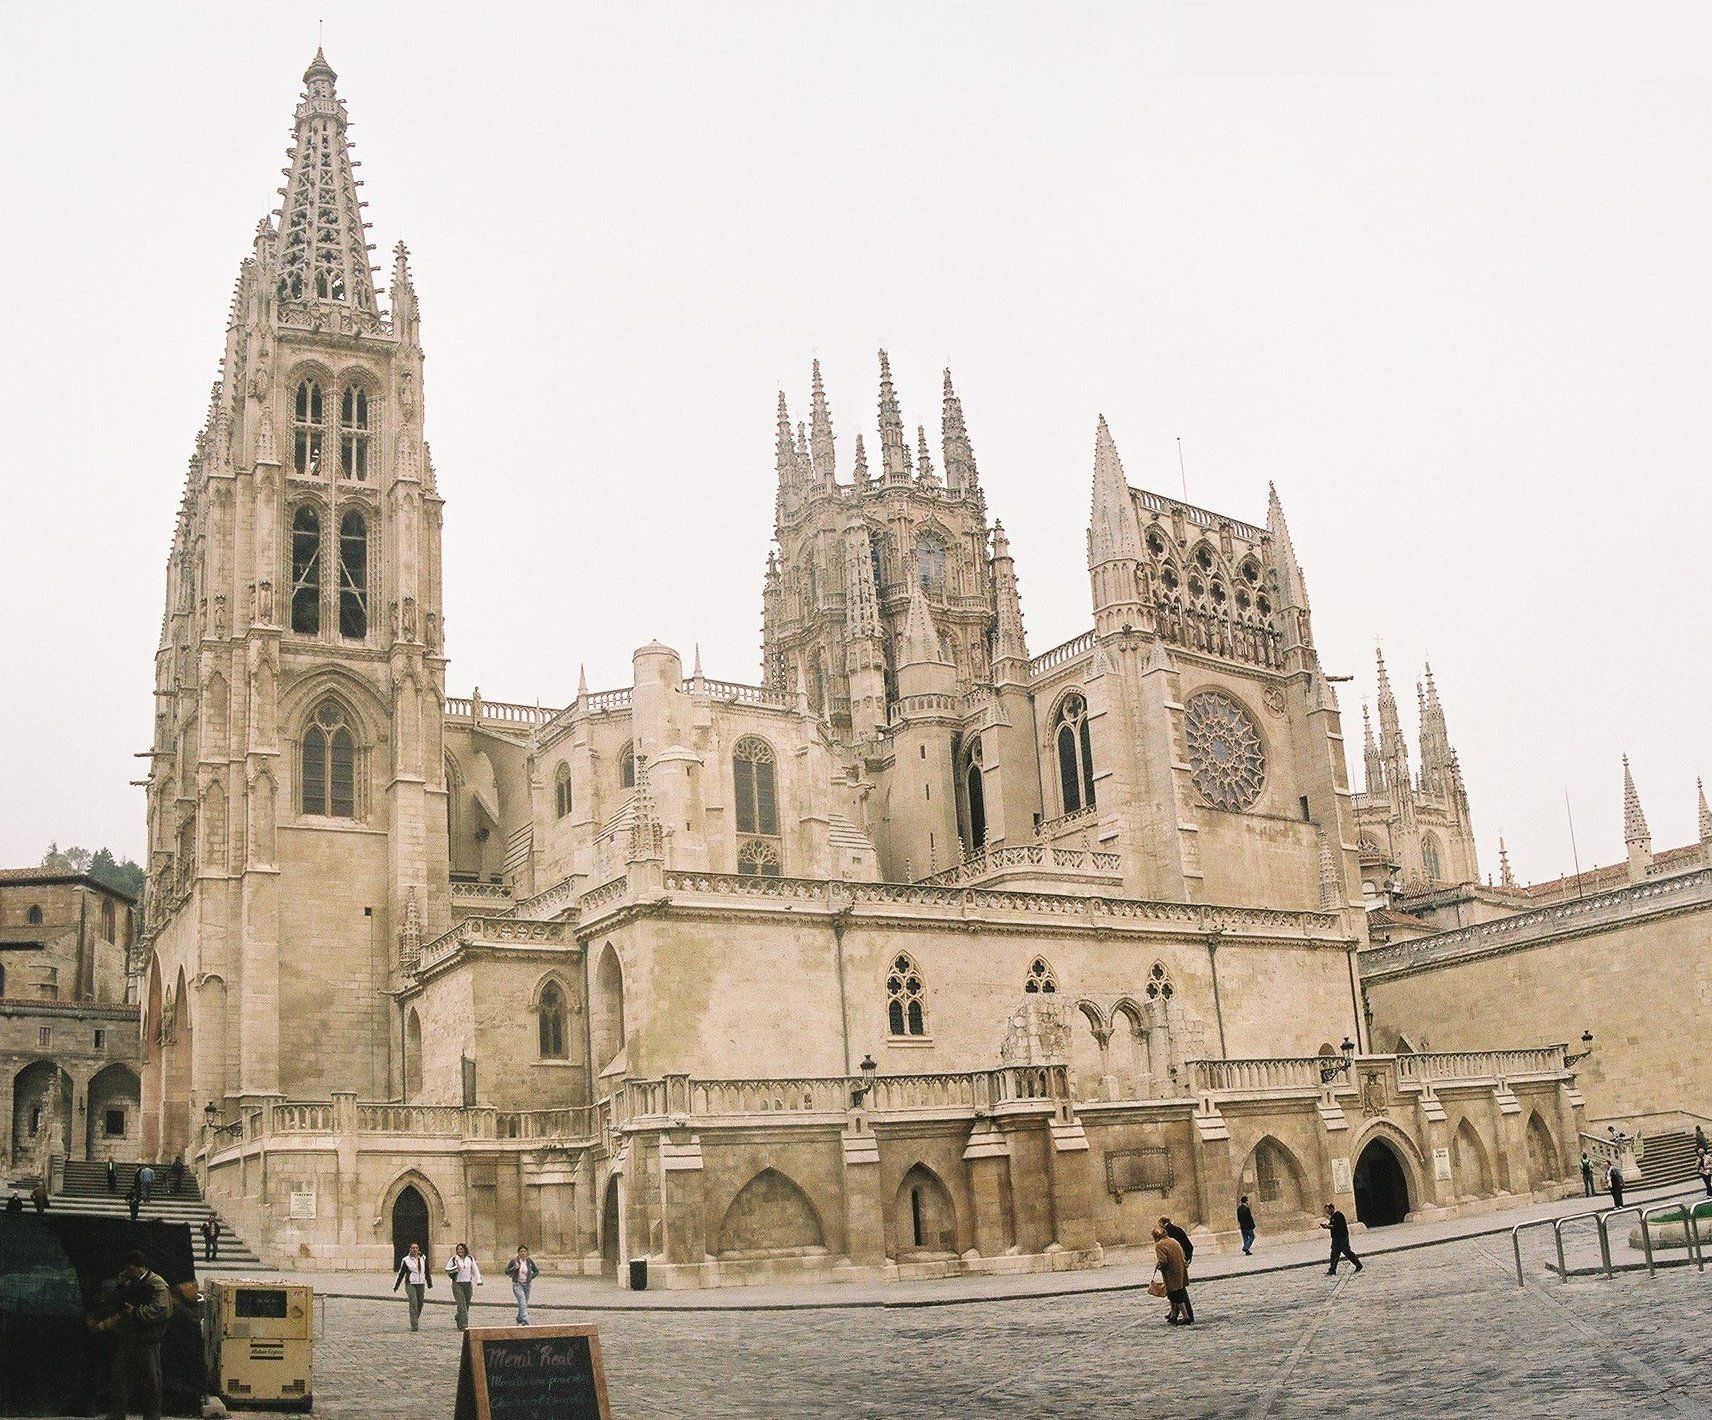 Cathedral in Burgos Spain (tomb of El Cid is within)